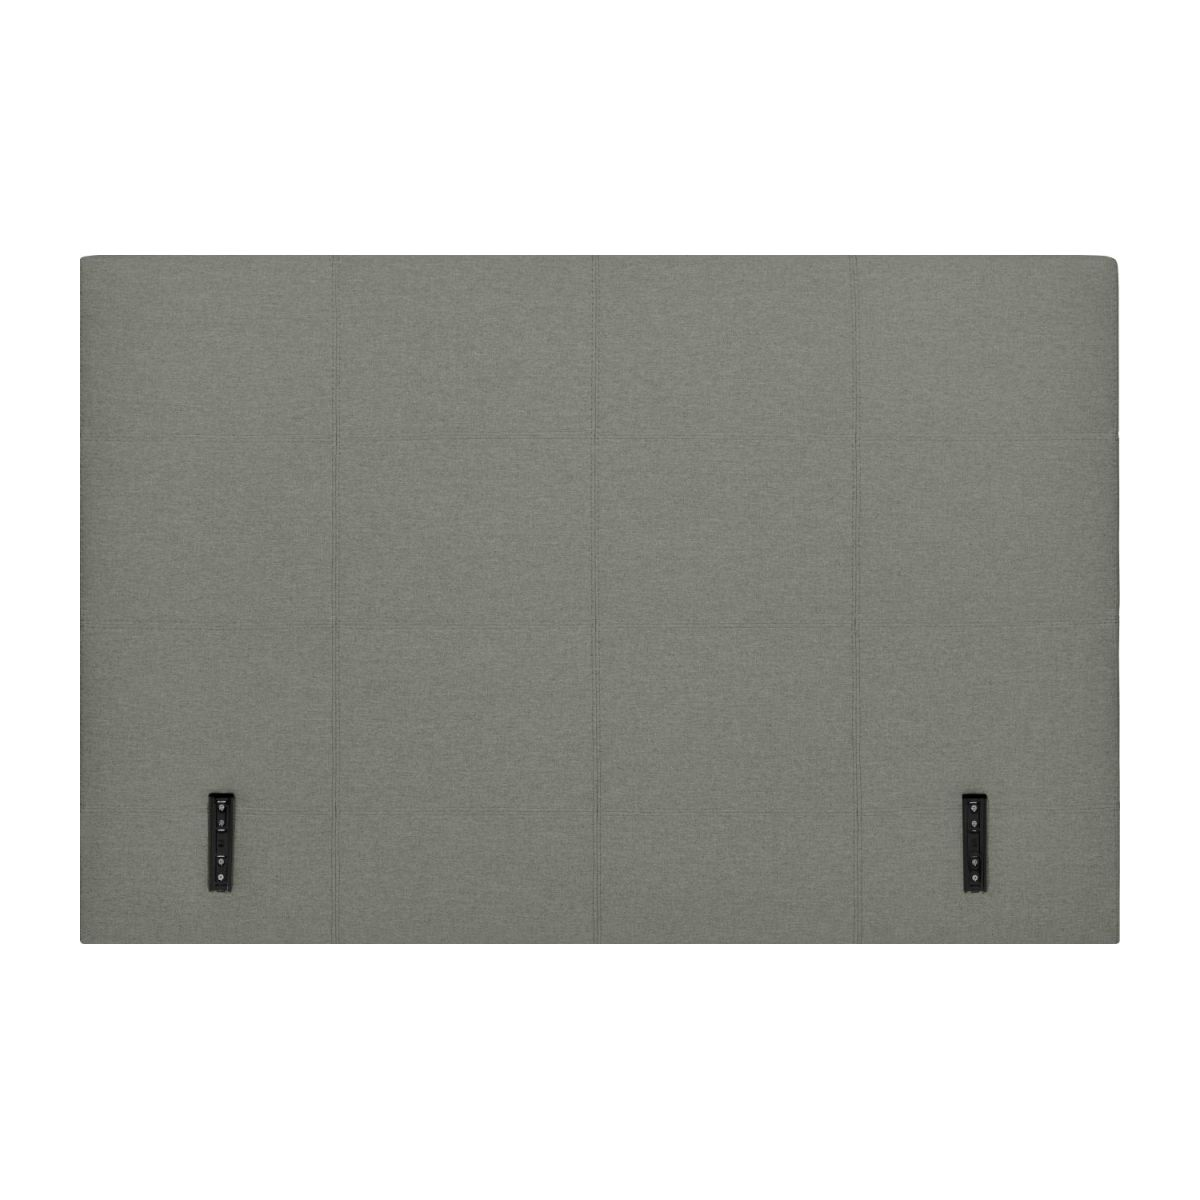 Headboard for 180cm box spring in fabric, mouse-grey n°3